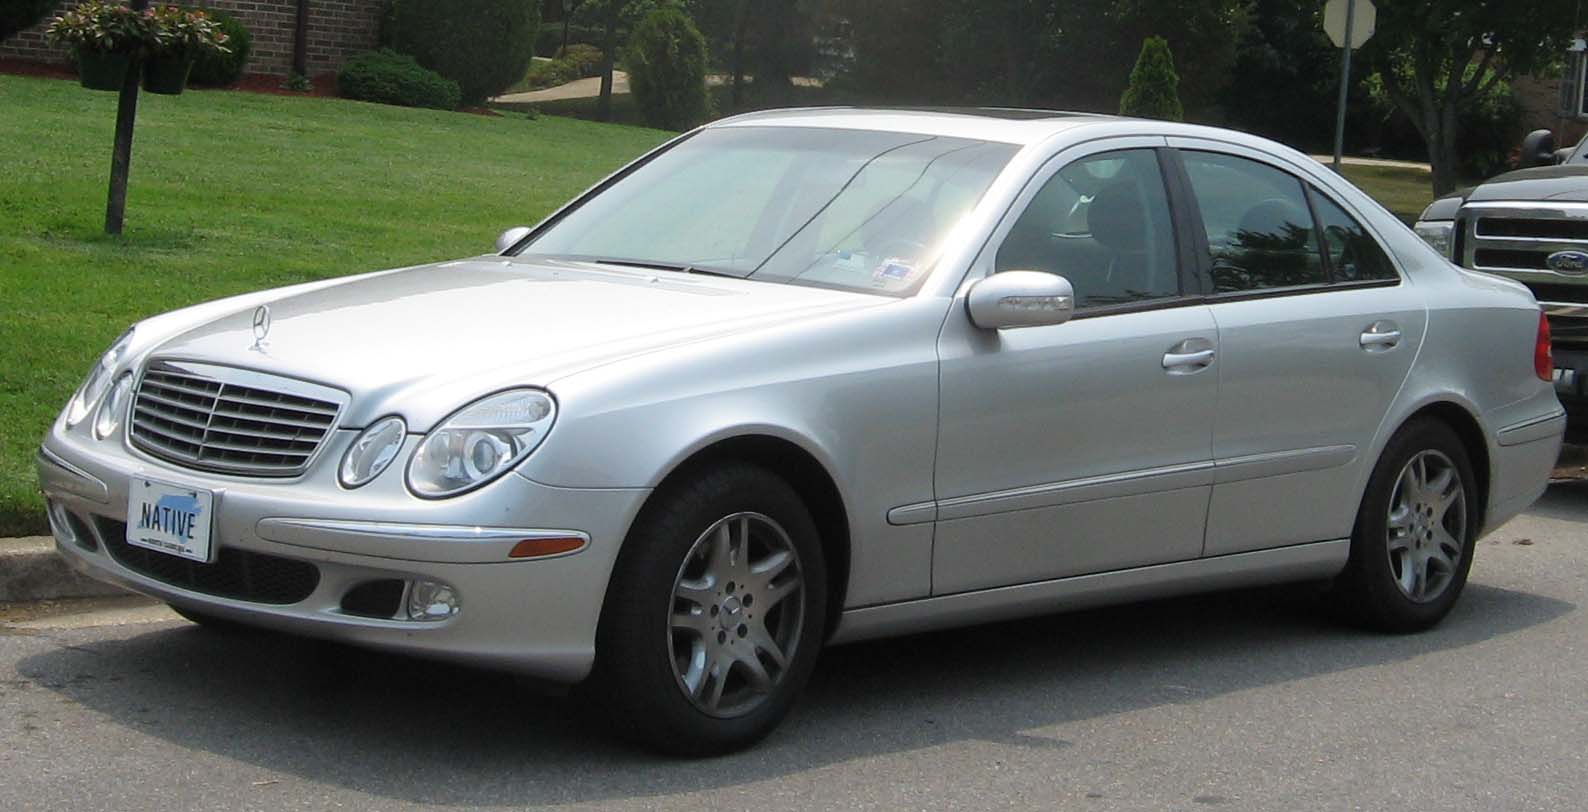 Mercedes benz e320 2000 review amazing pictures and for Mercedes benz 2000 e320